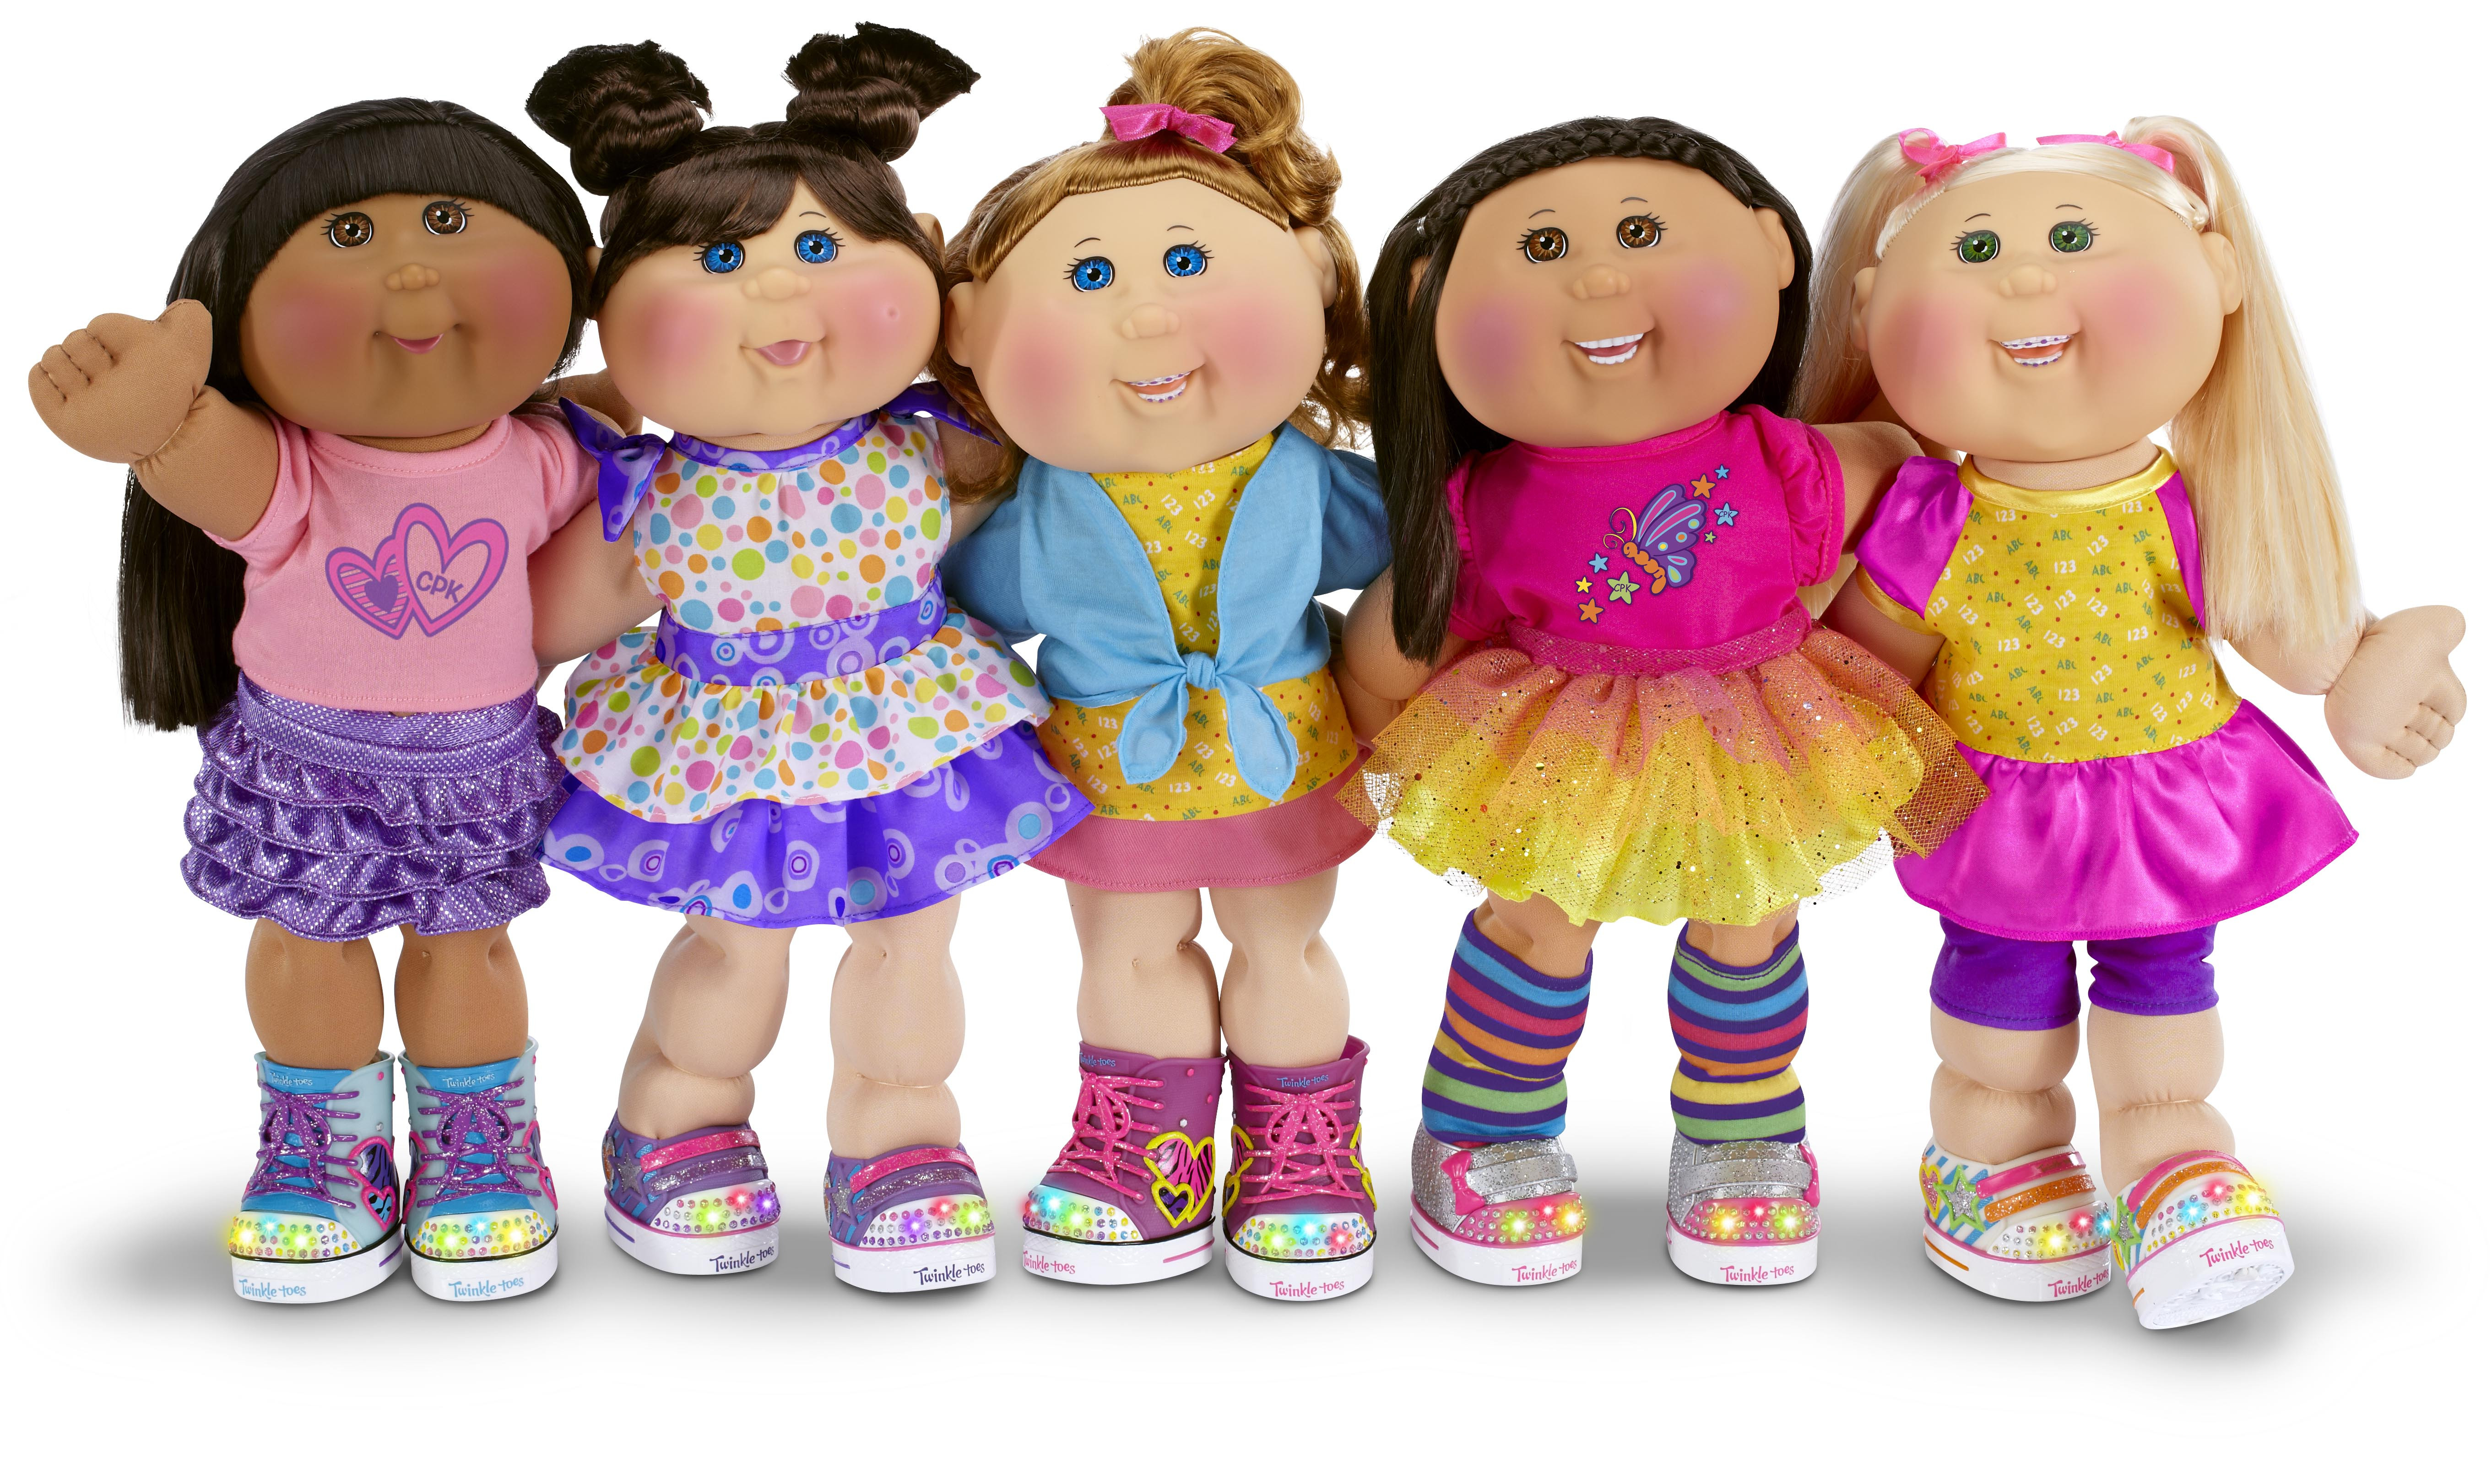 Cabbage Patch Doll Elegant Cabbage Patch Kids Get 2014 Makeover with Skechers Shoes Of Superb 40 Models Cabbage Patch Doll